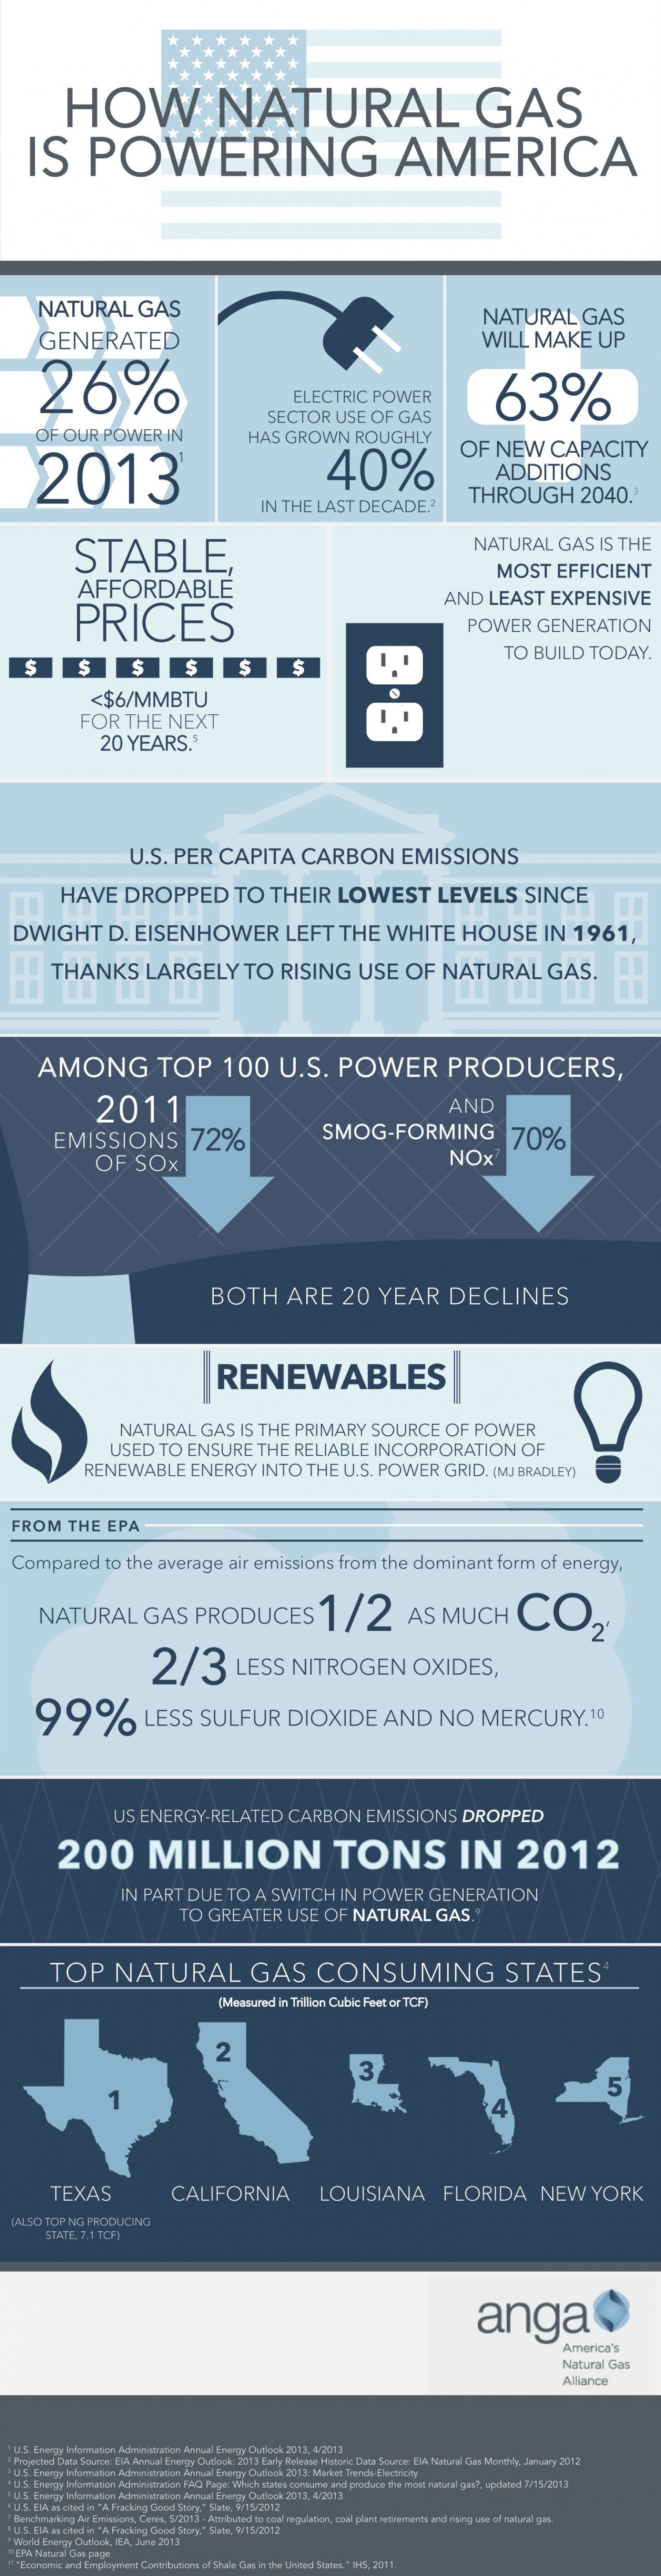 How Natural Gas is Powering America Infographic